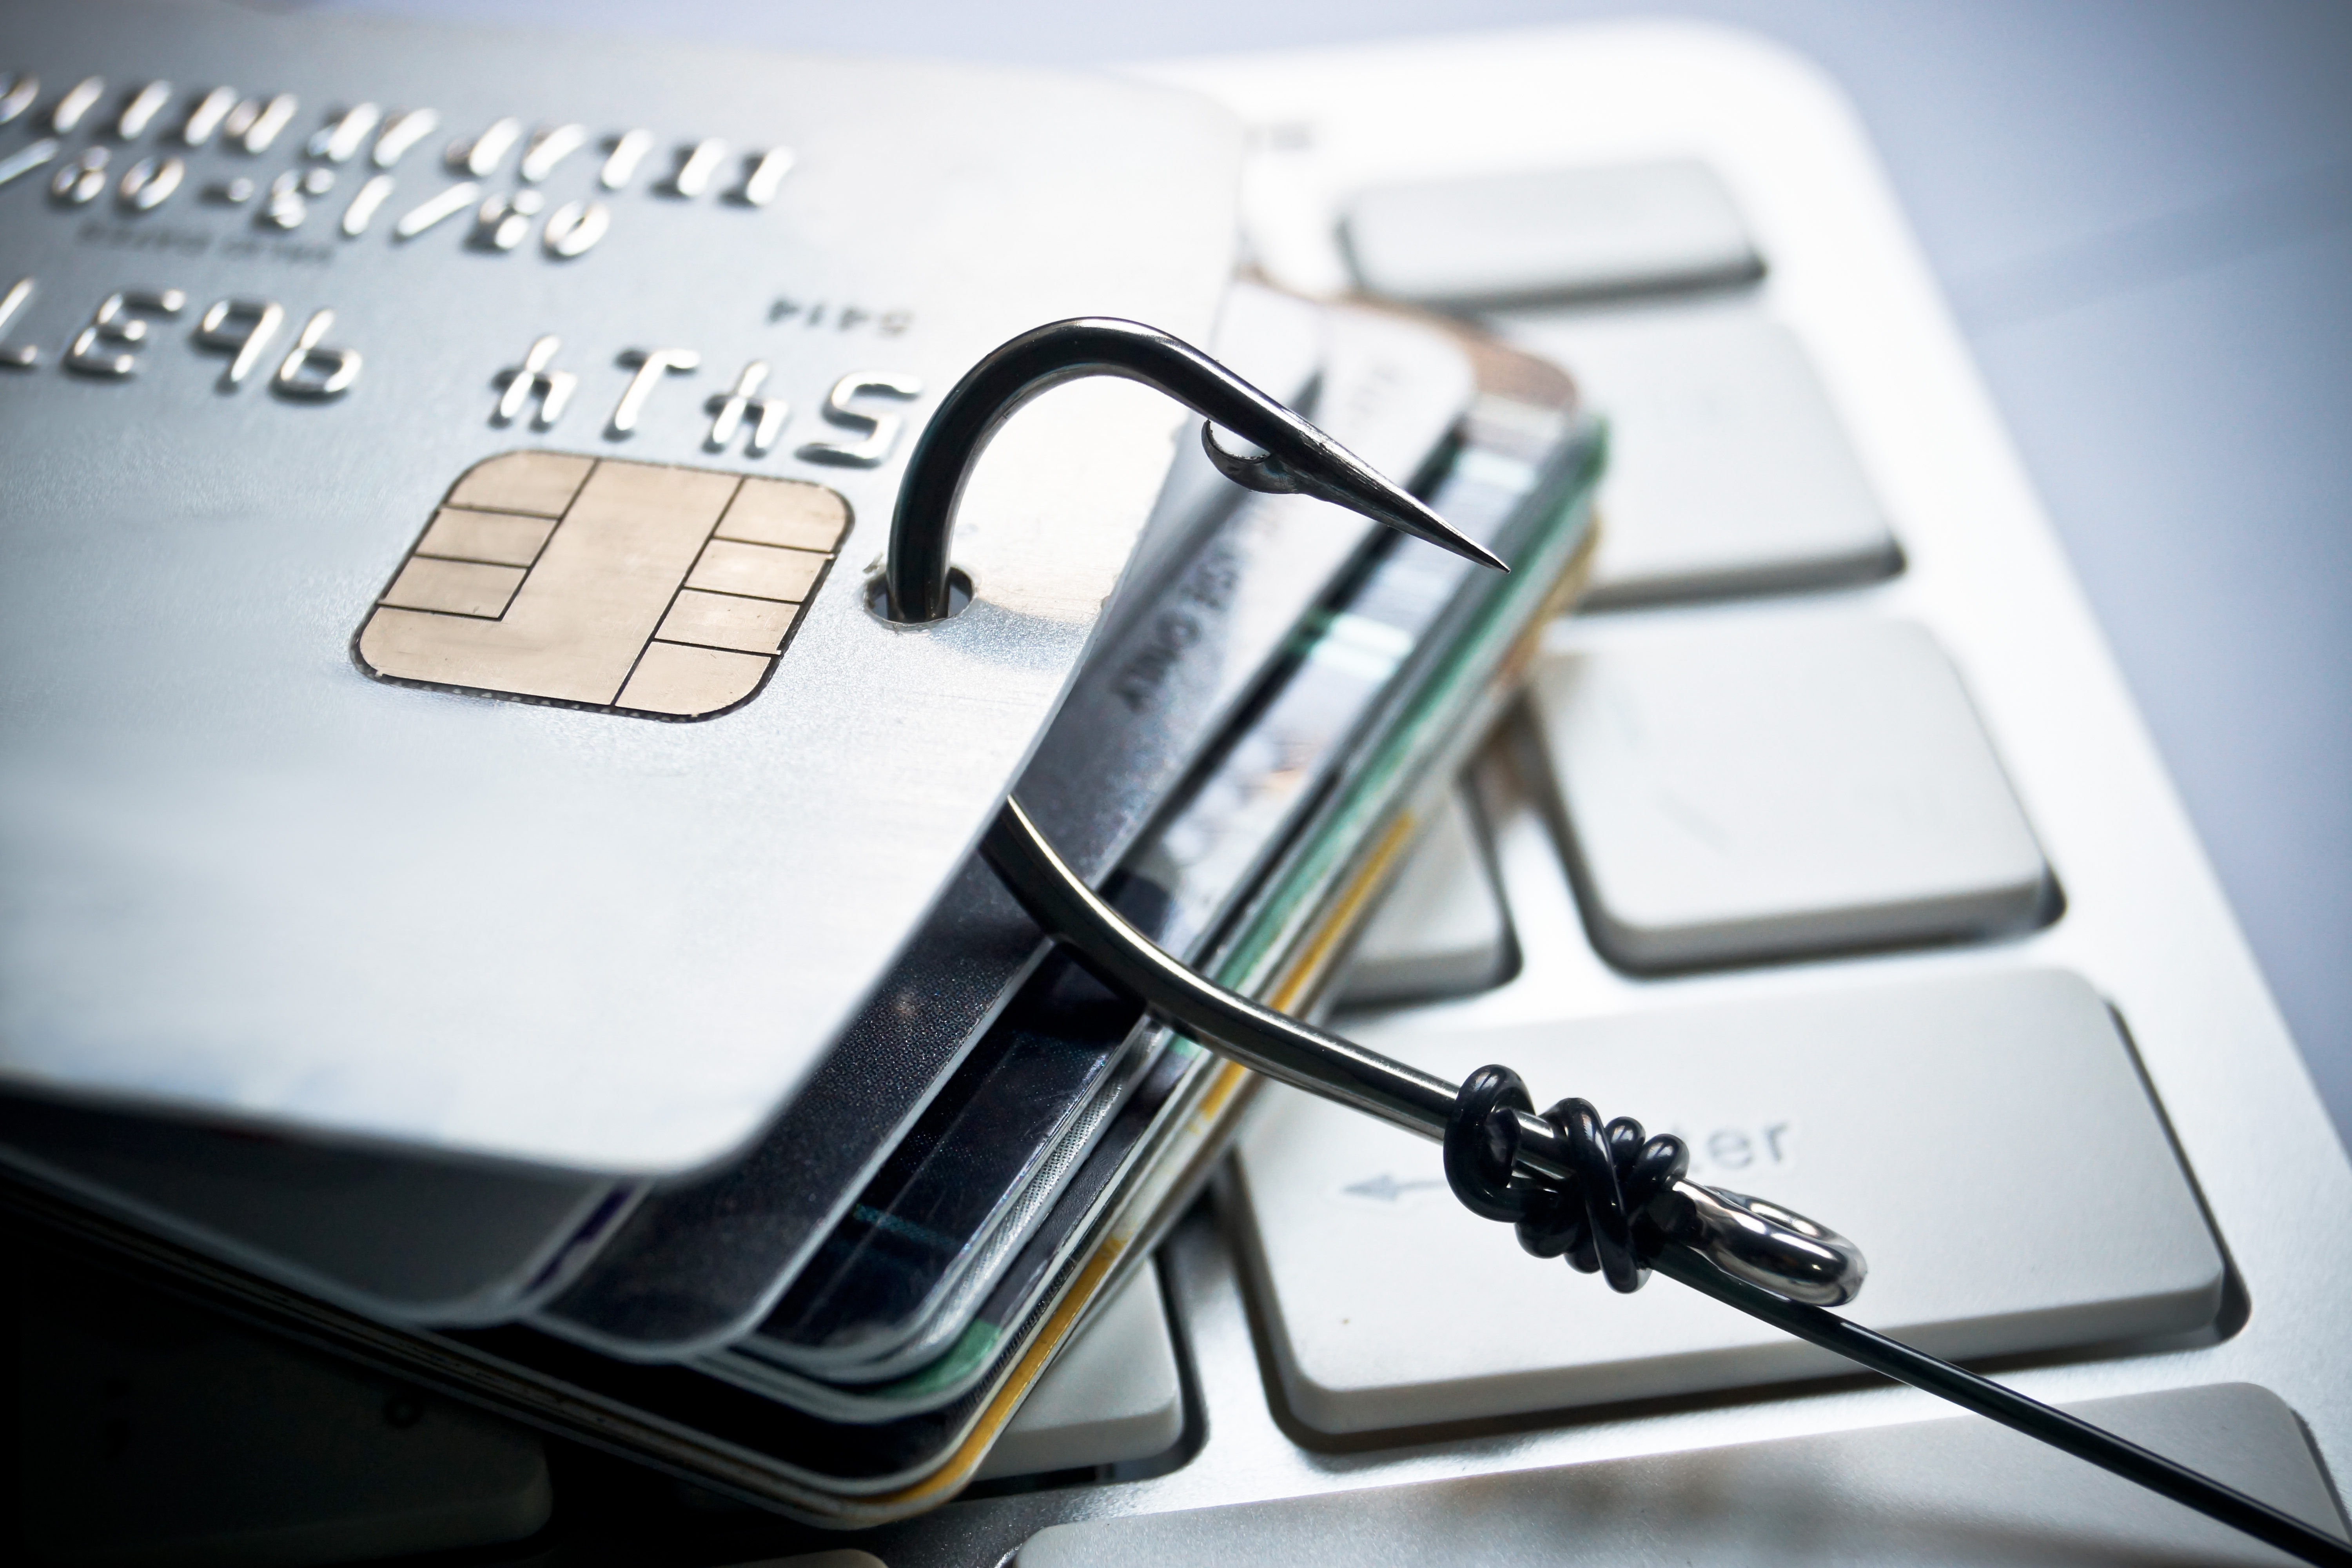 Major Keys for Identifying Different Kinds of Phishing Scams